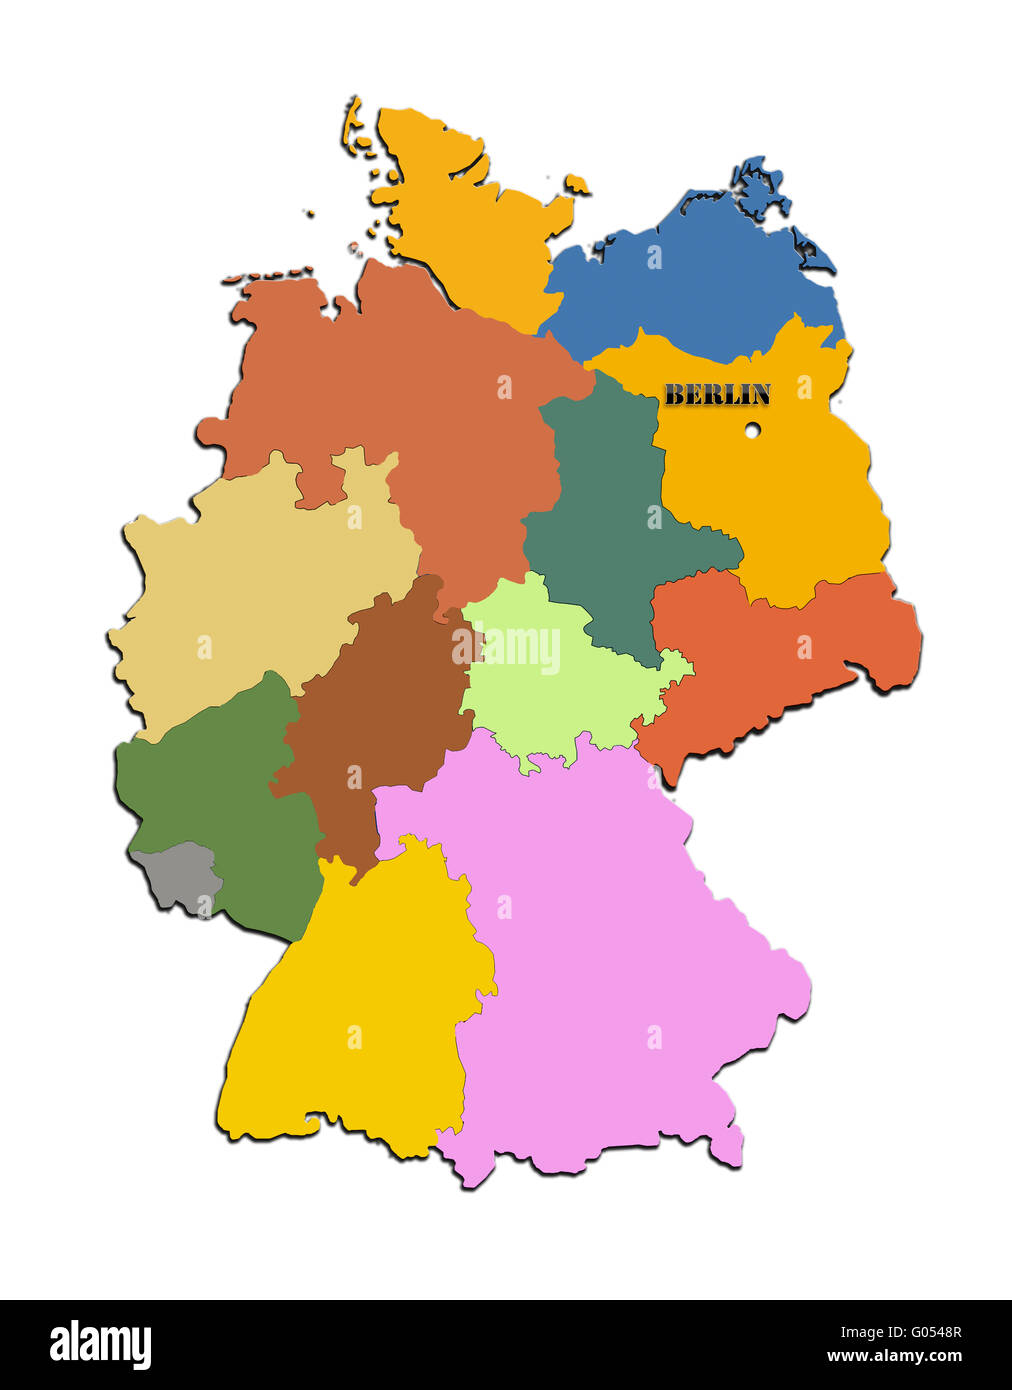 Colored silhouette of the map of Germany - Stock Image